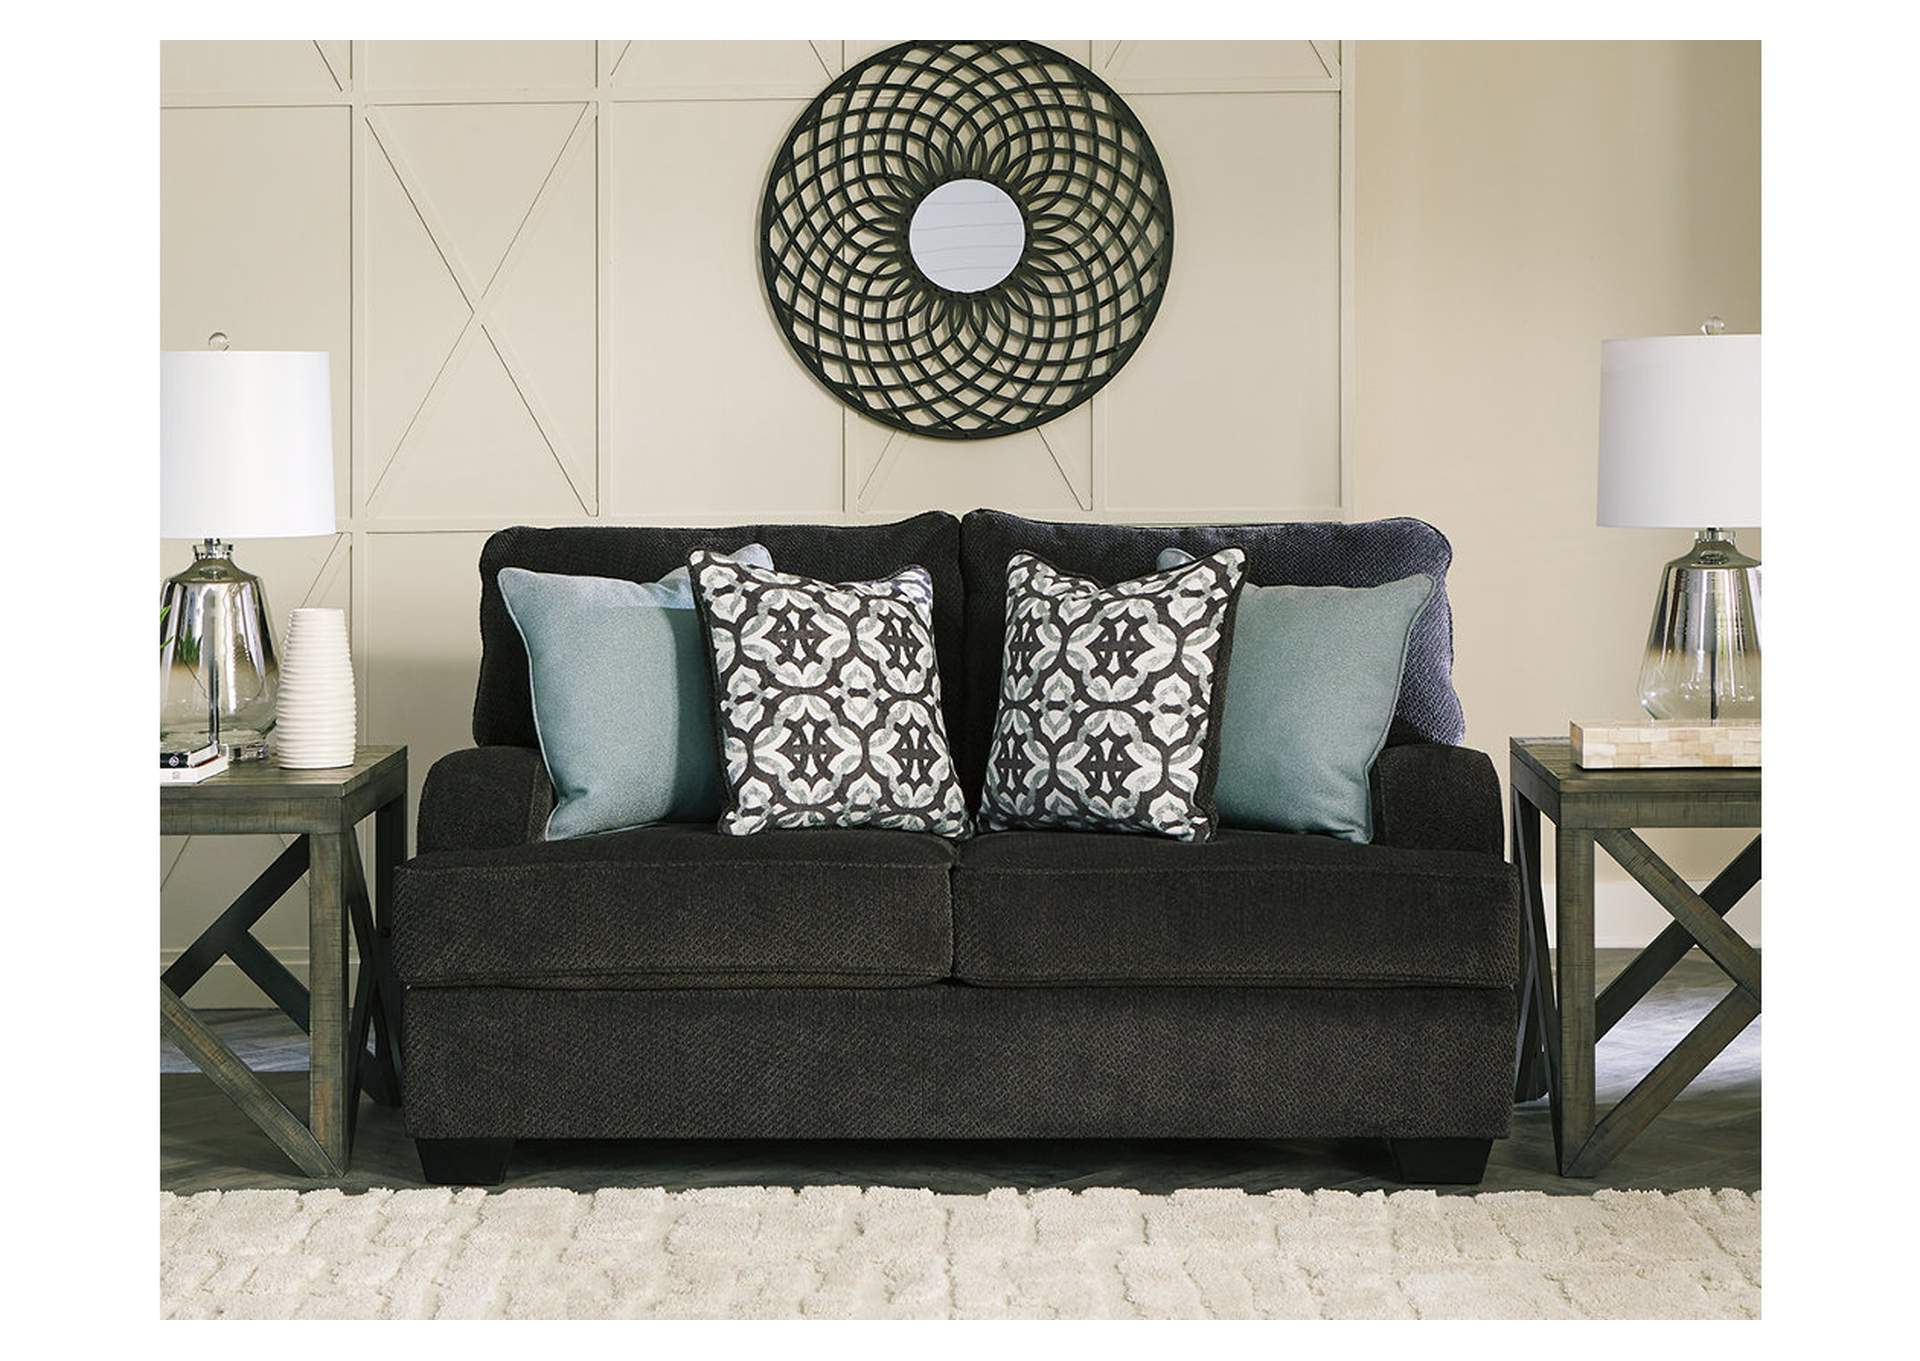 Charenton Charcoal Loveseat,Benchcraft